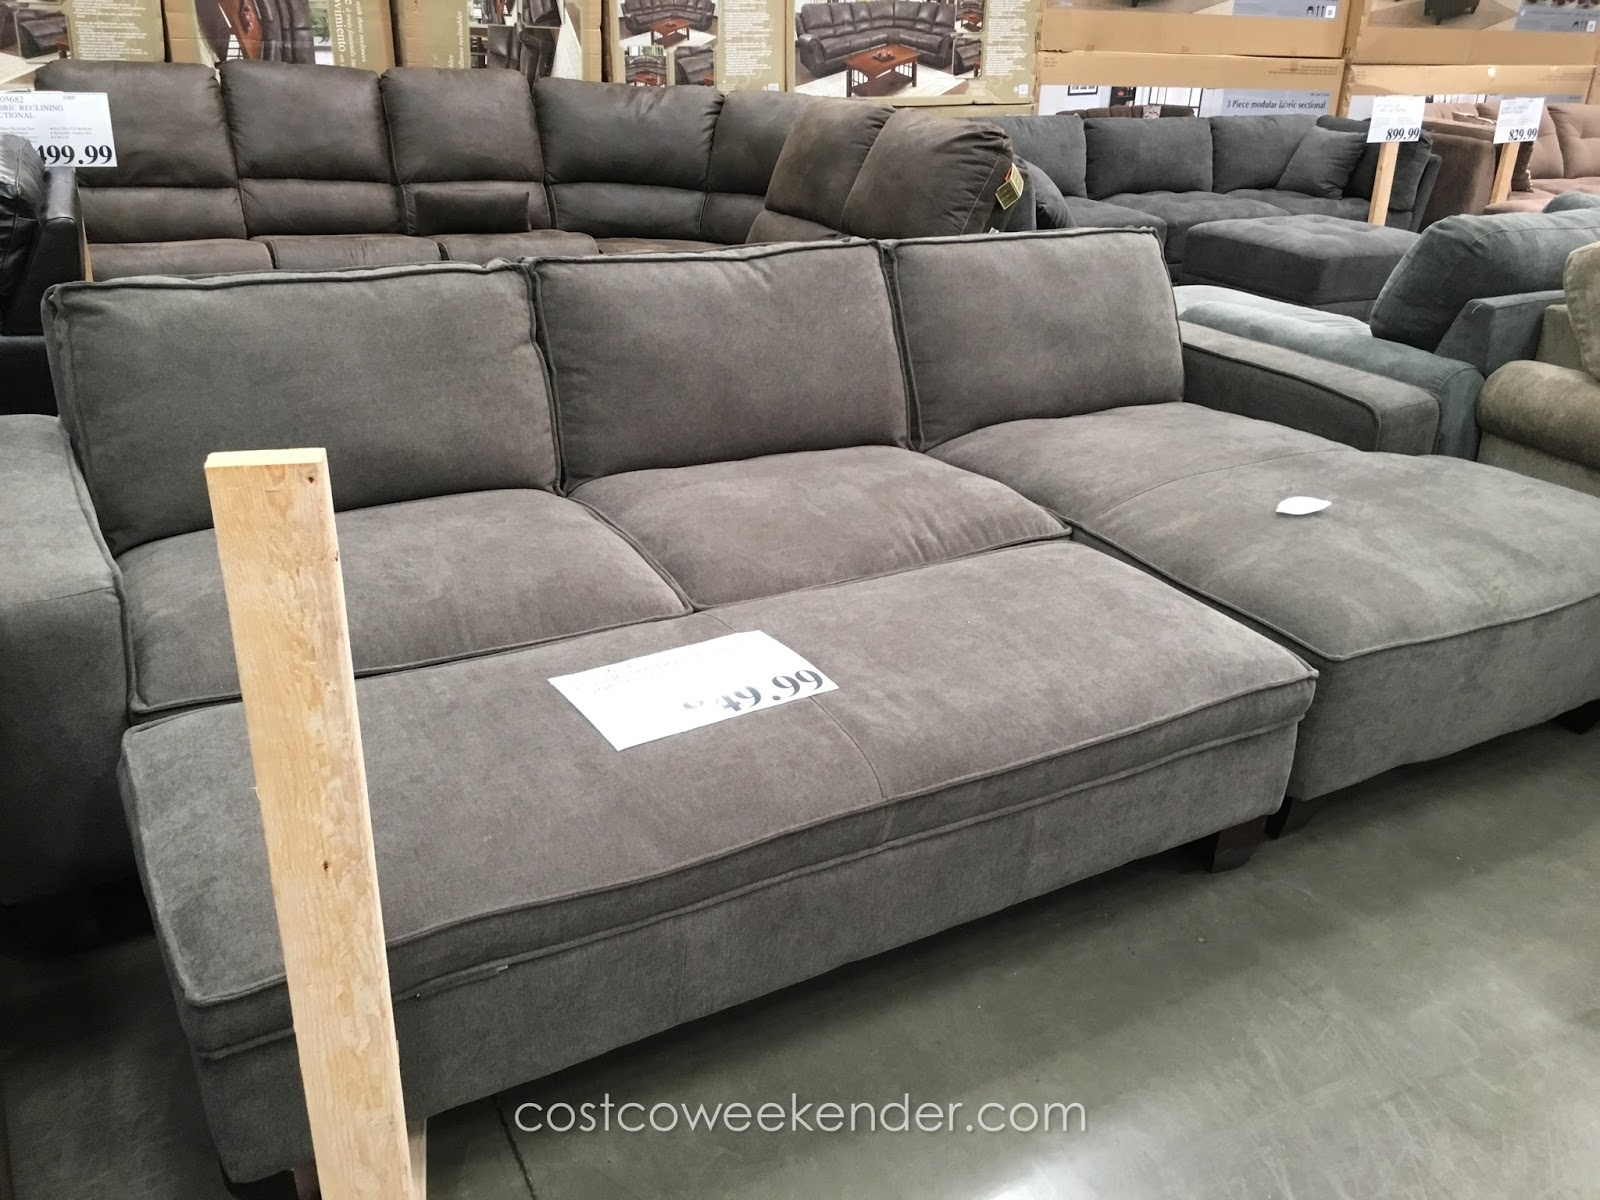 Sofas Center Cosco Reclining Sofas Sofa Costco 2016costco Inside Berkline Sectional Sofa (Image 14 of 15)